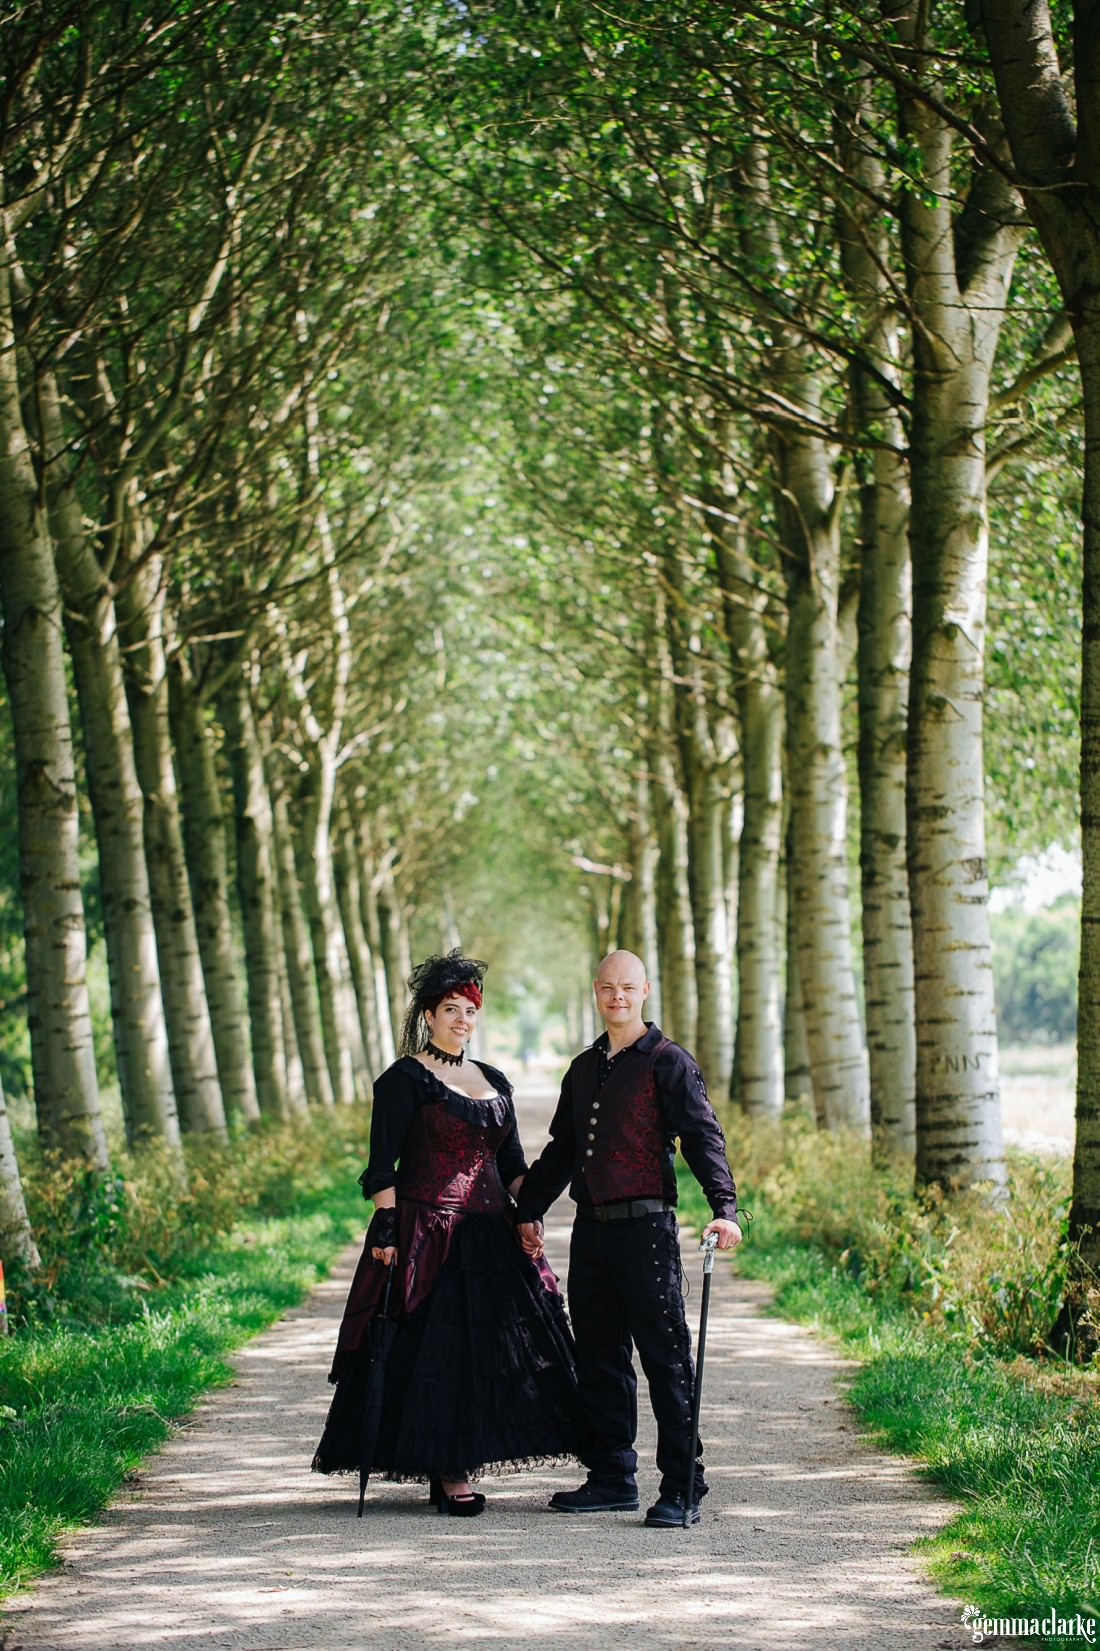 A row of trees and a bride and groom standing in between them with their black and red attire for this Friday the 13th Wedding